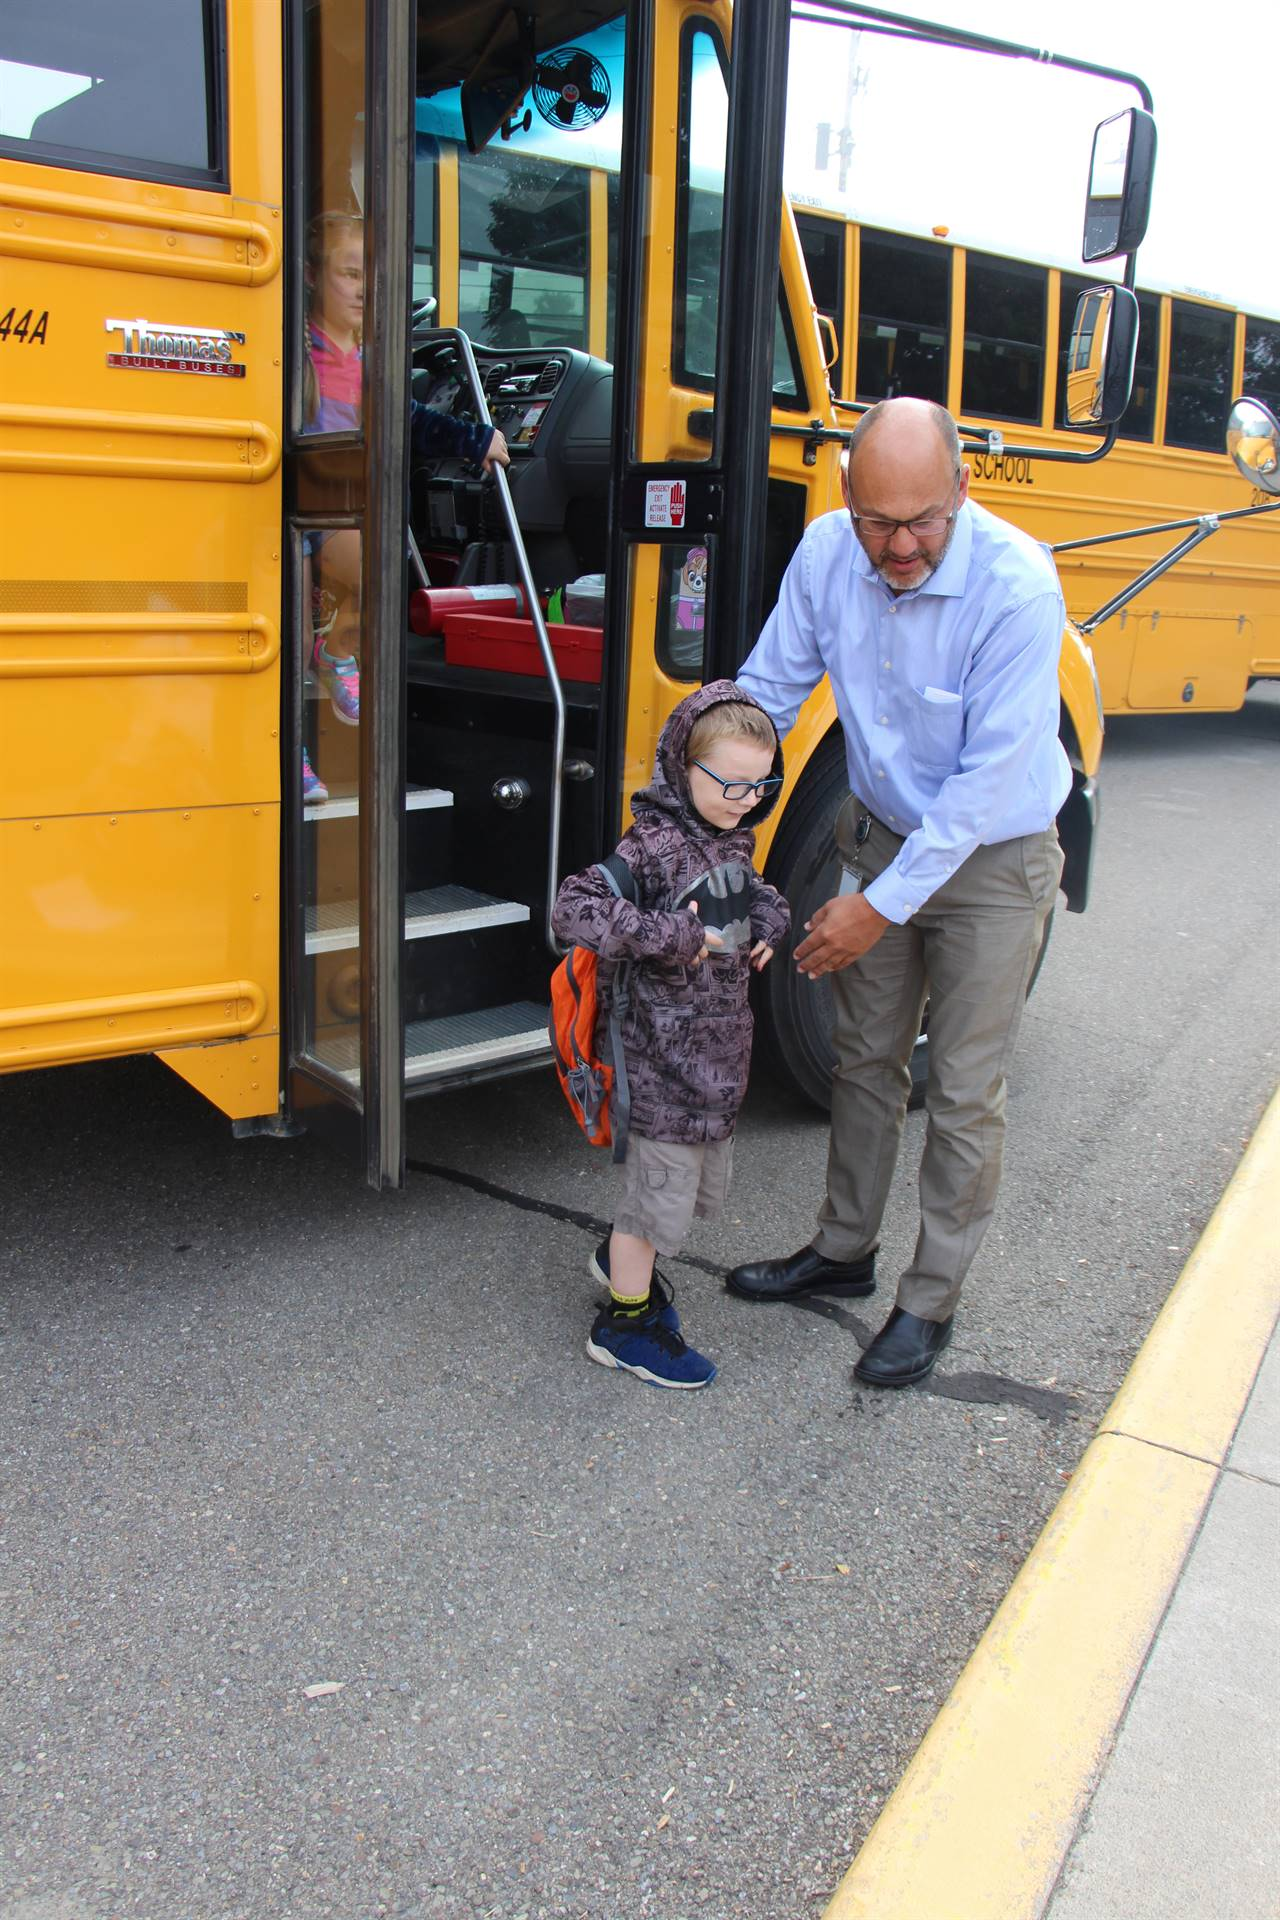 Principal helps student off bus